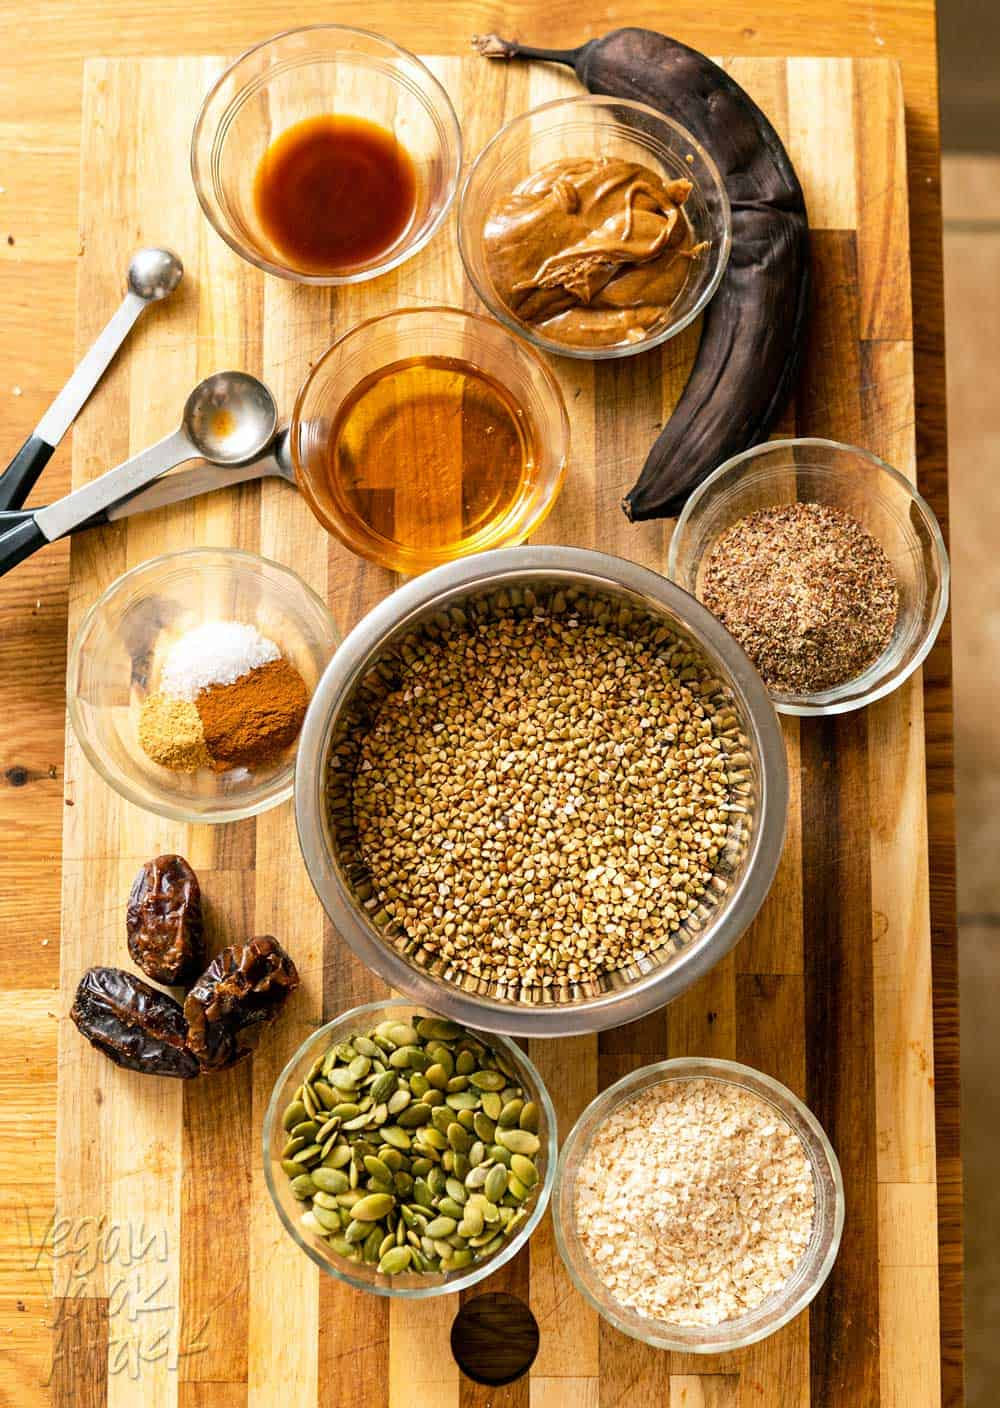 Buckwheat, banana, pepitas, dates, and other ingredients laid out on a cutting board